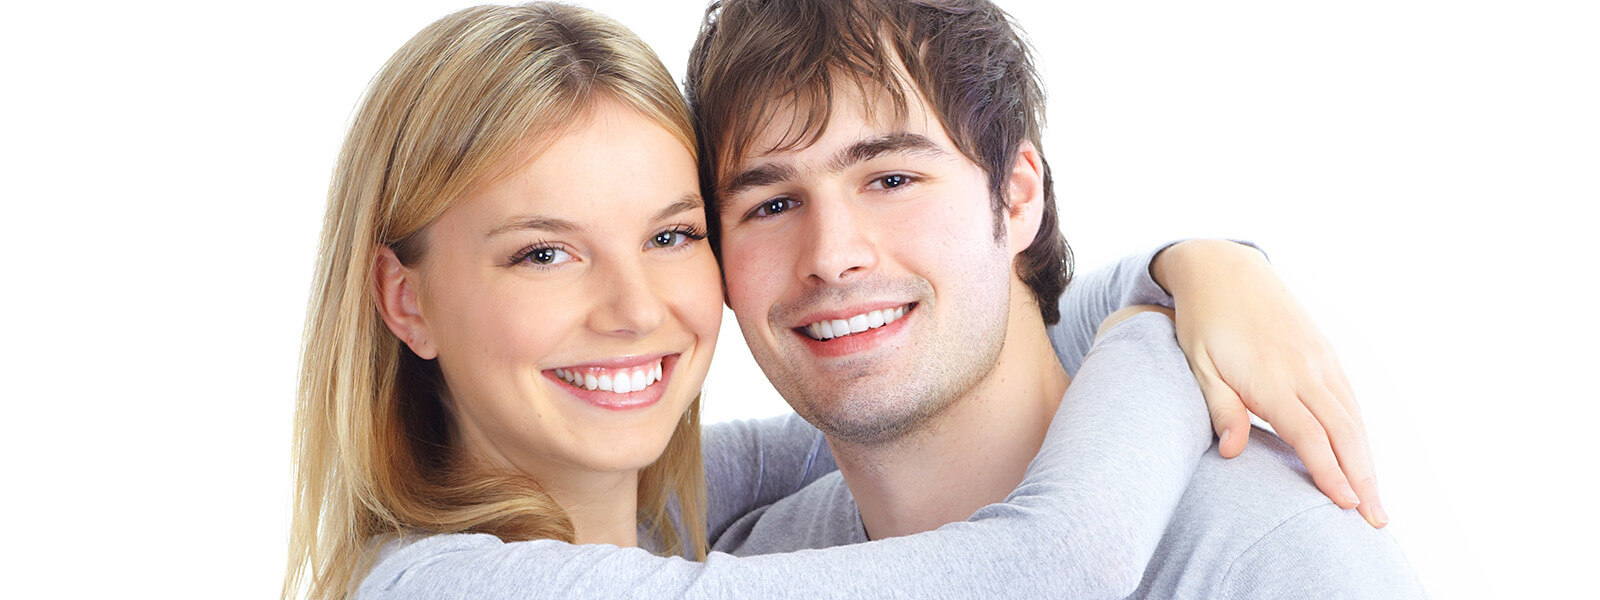 Cosmetic Dentistry Procedures and Services